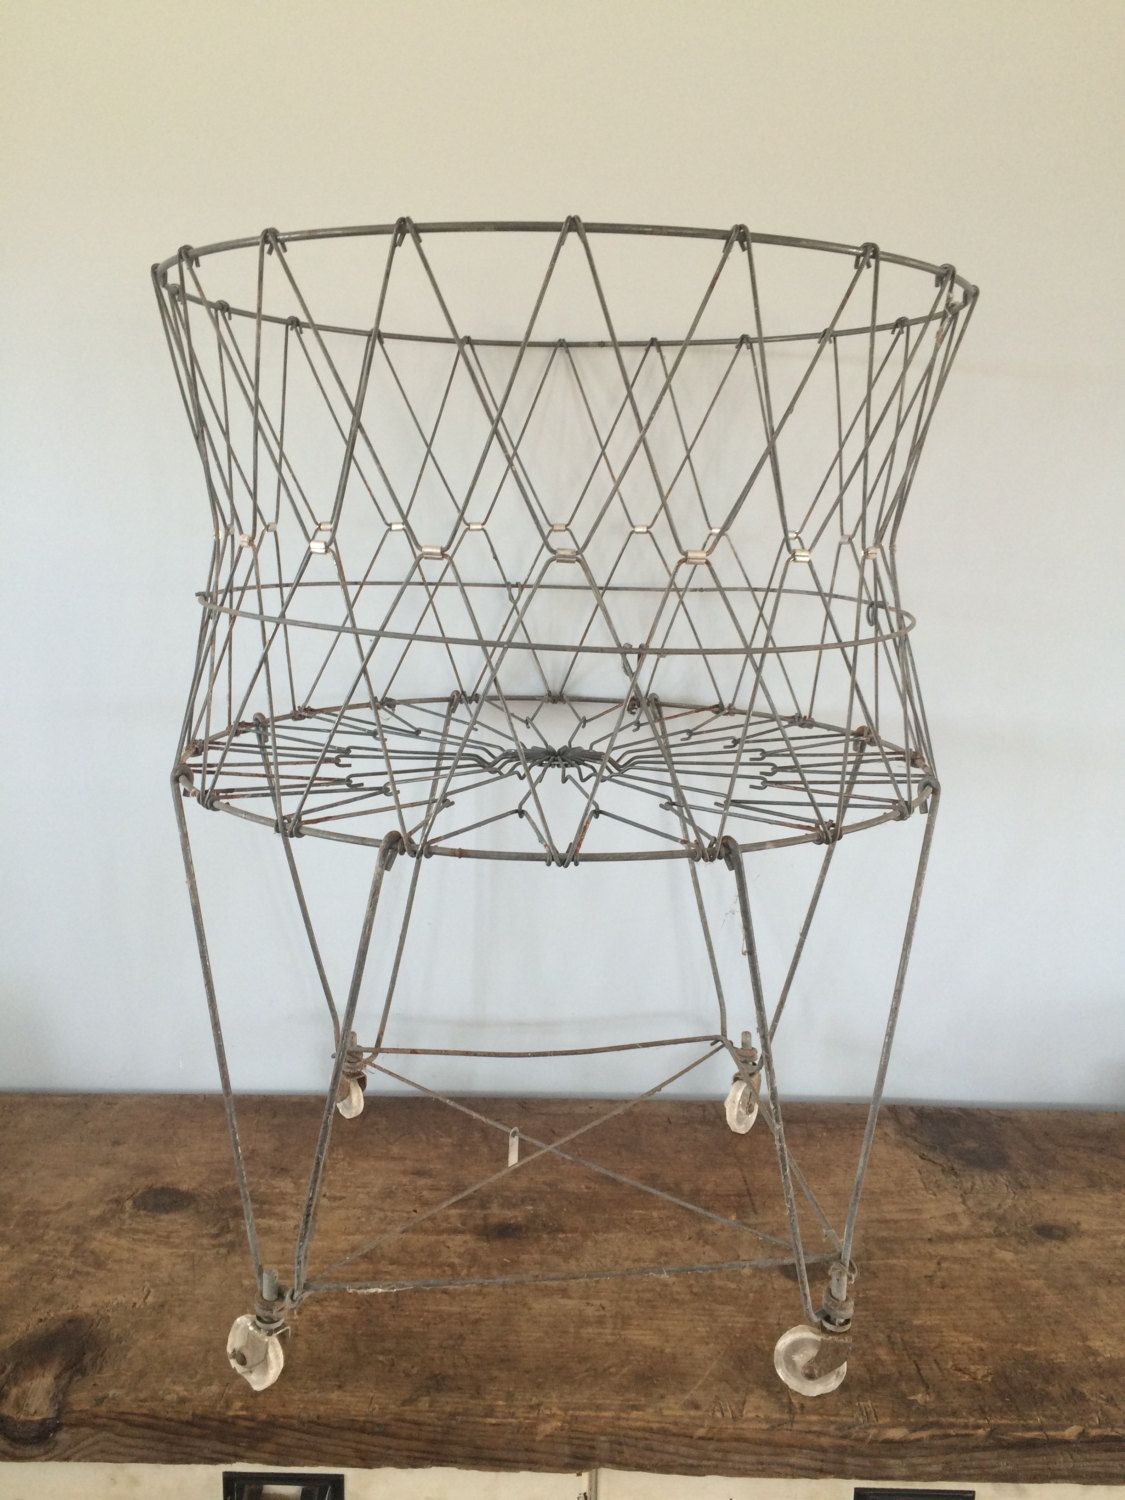 Wire Laundry Hamper On Wheels Vintage Original Collapsable Wire Laundry Basket On Wheels